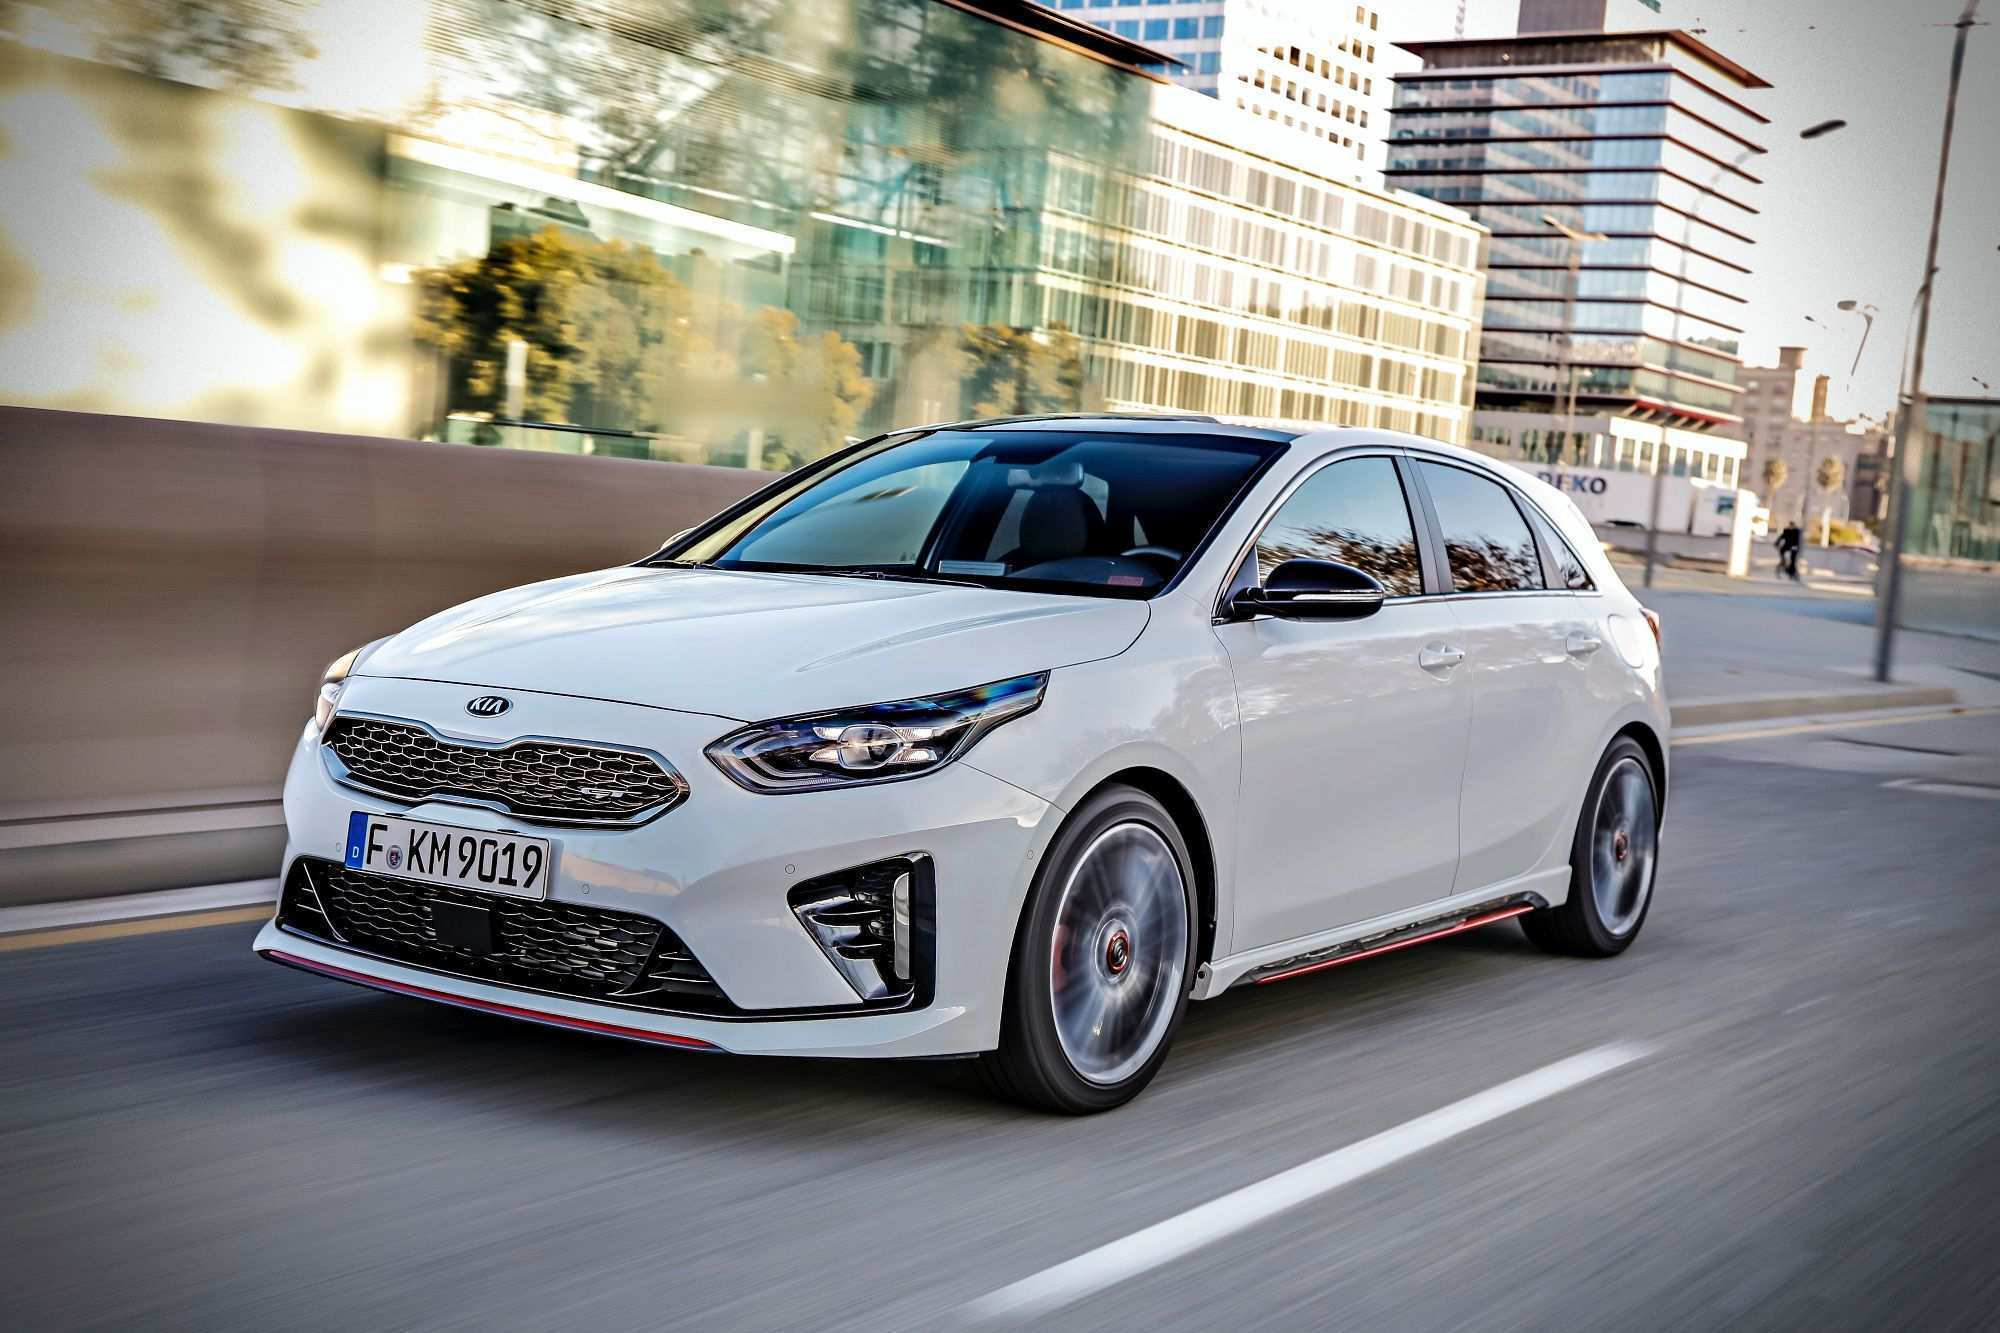 62 The Best Kia Ceed Gt 2019 Images